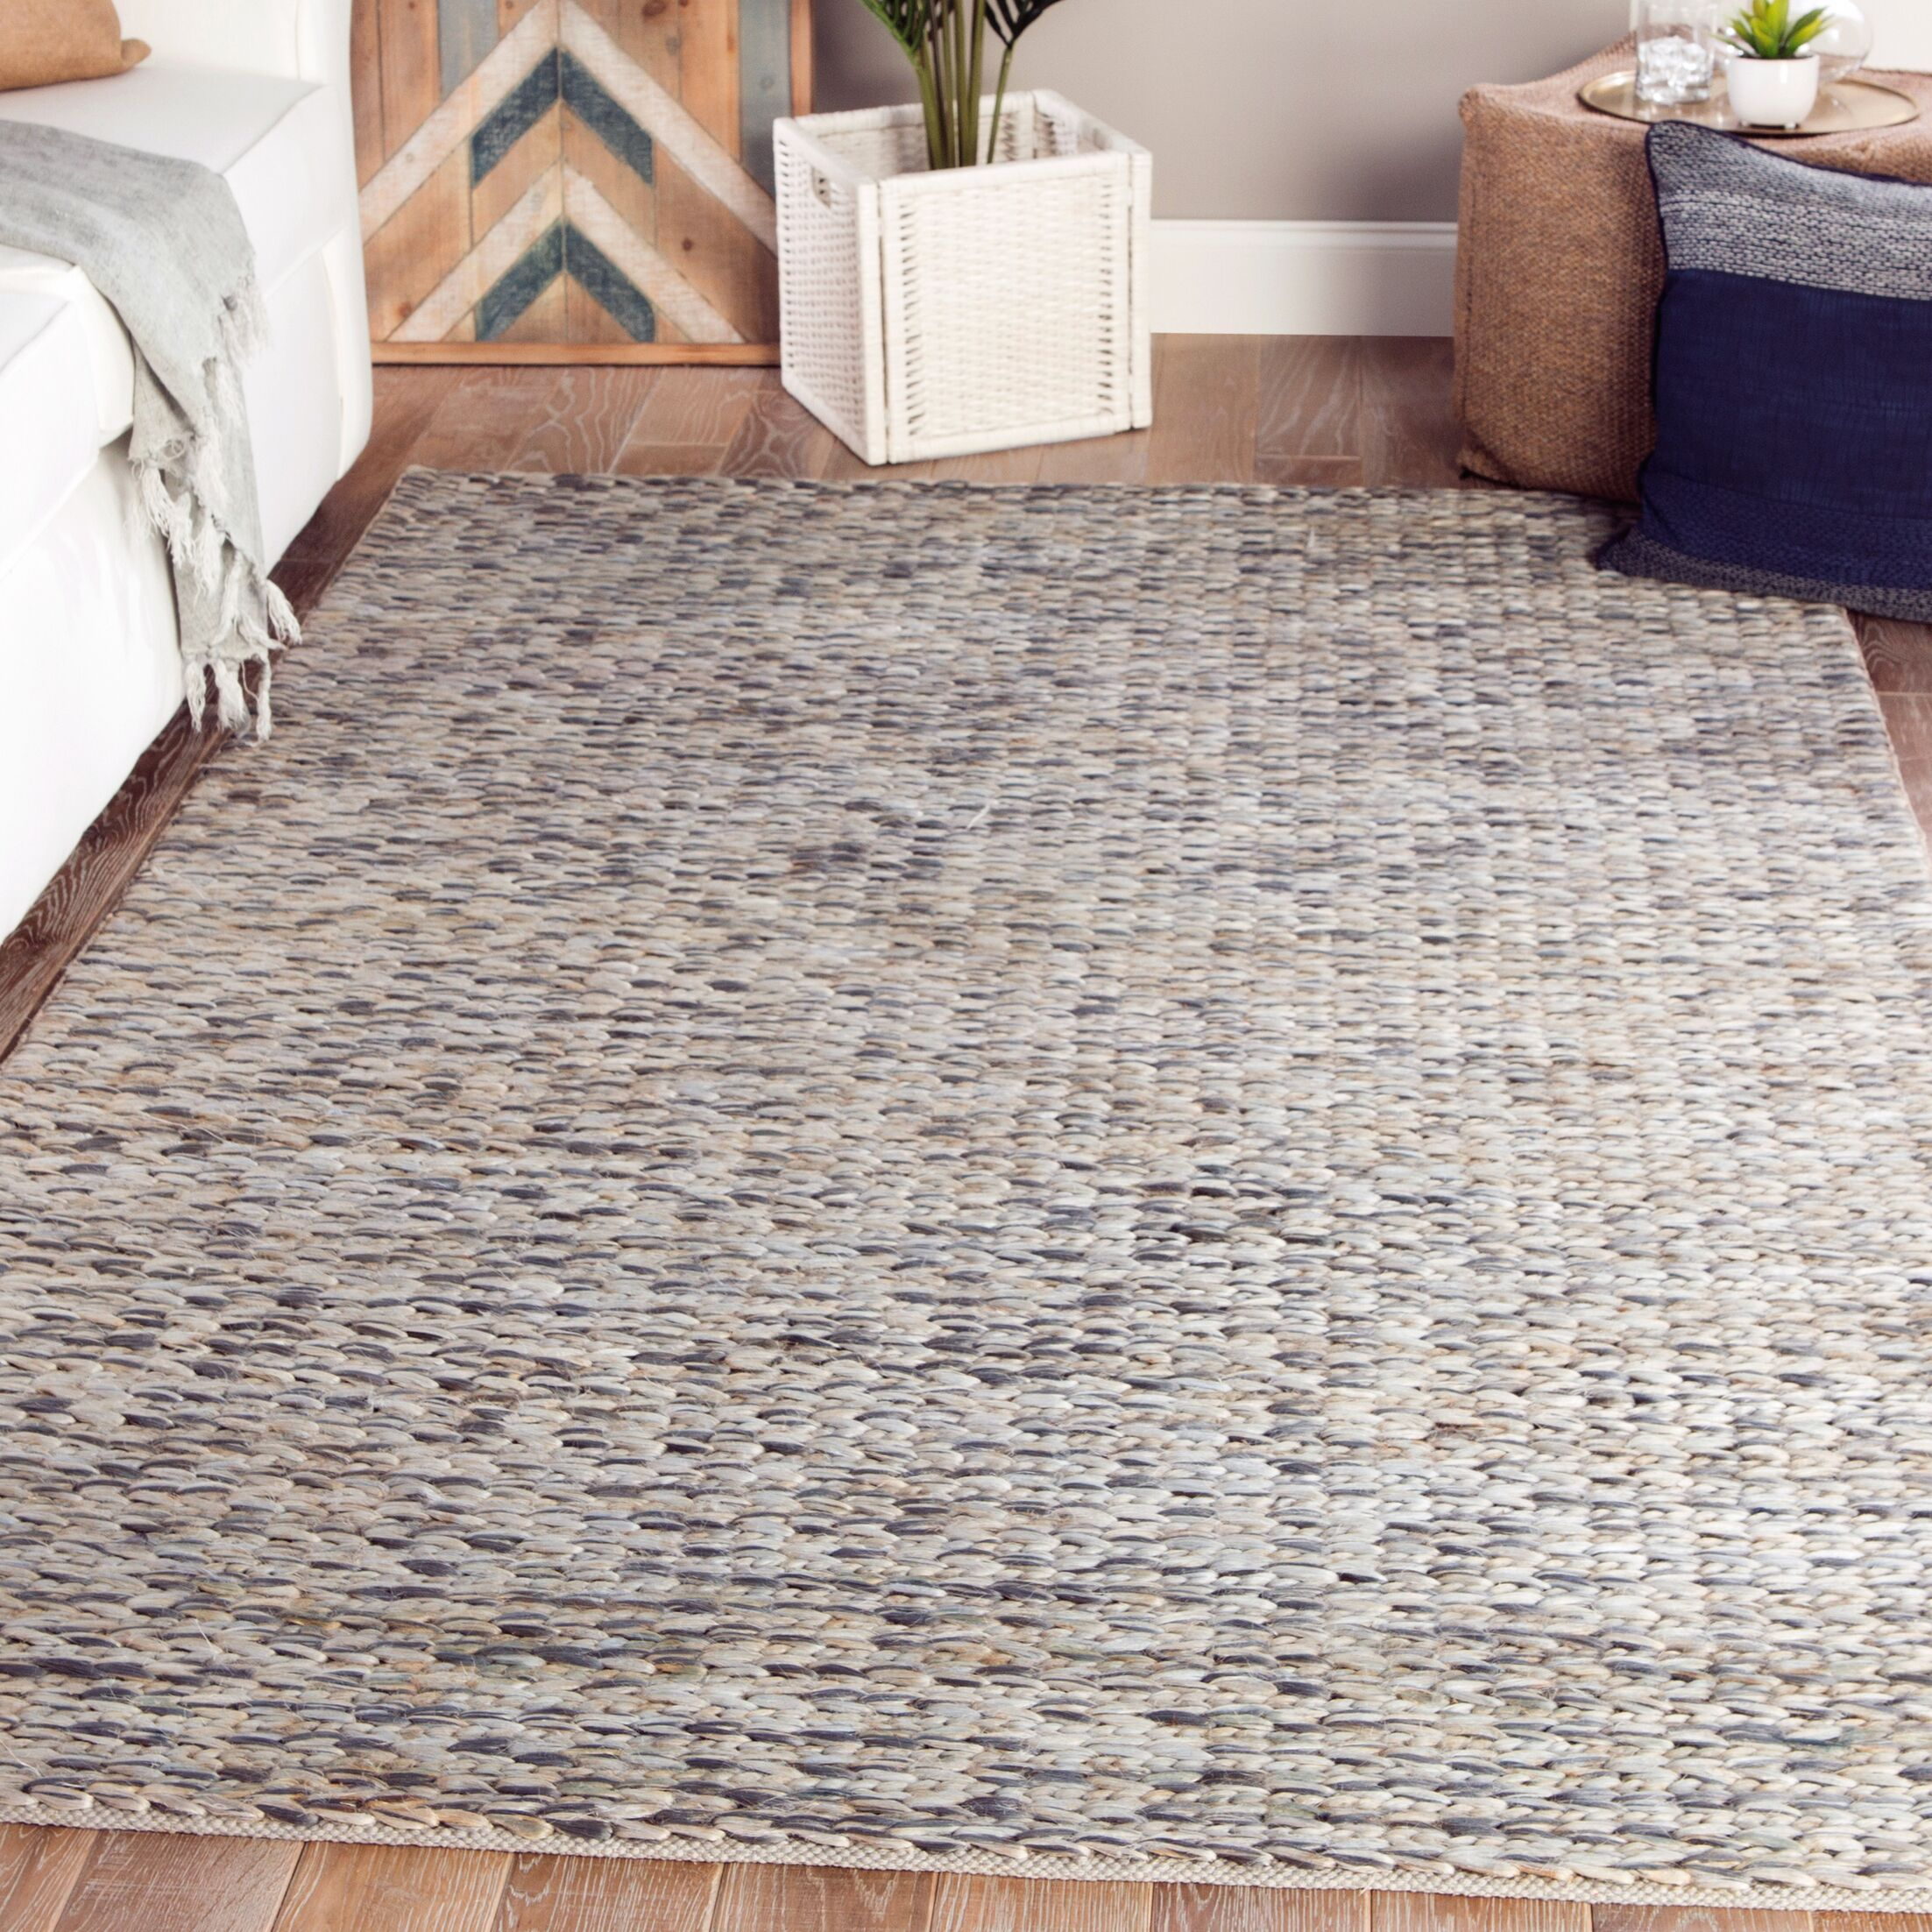 Giselle Natural Beige/Gray Area Rug Rug Size: Rectangle 9' x 12'